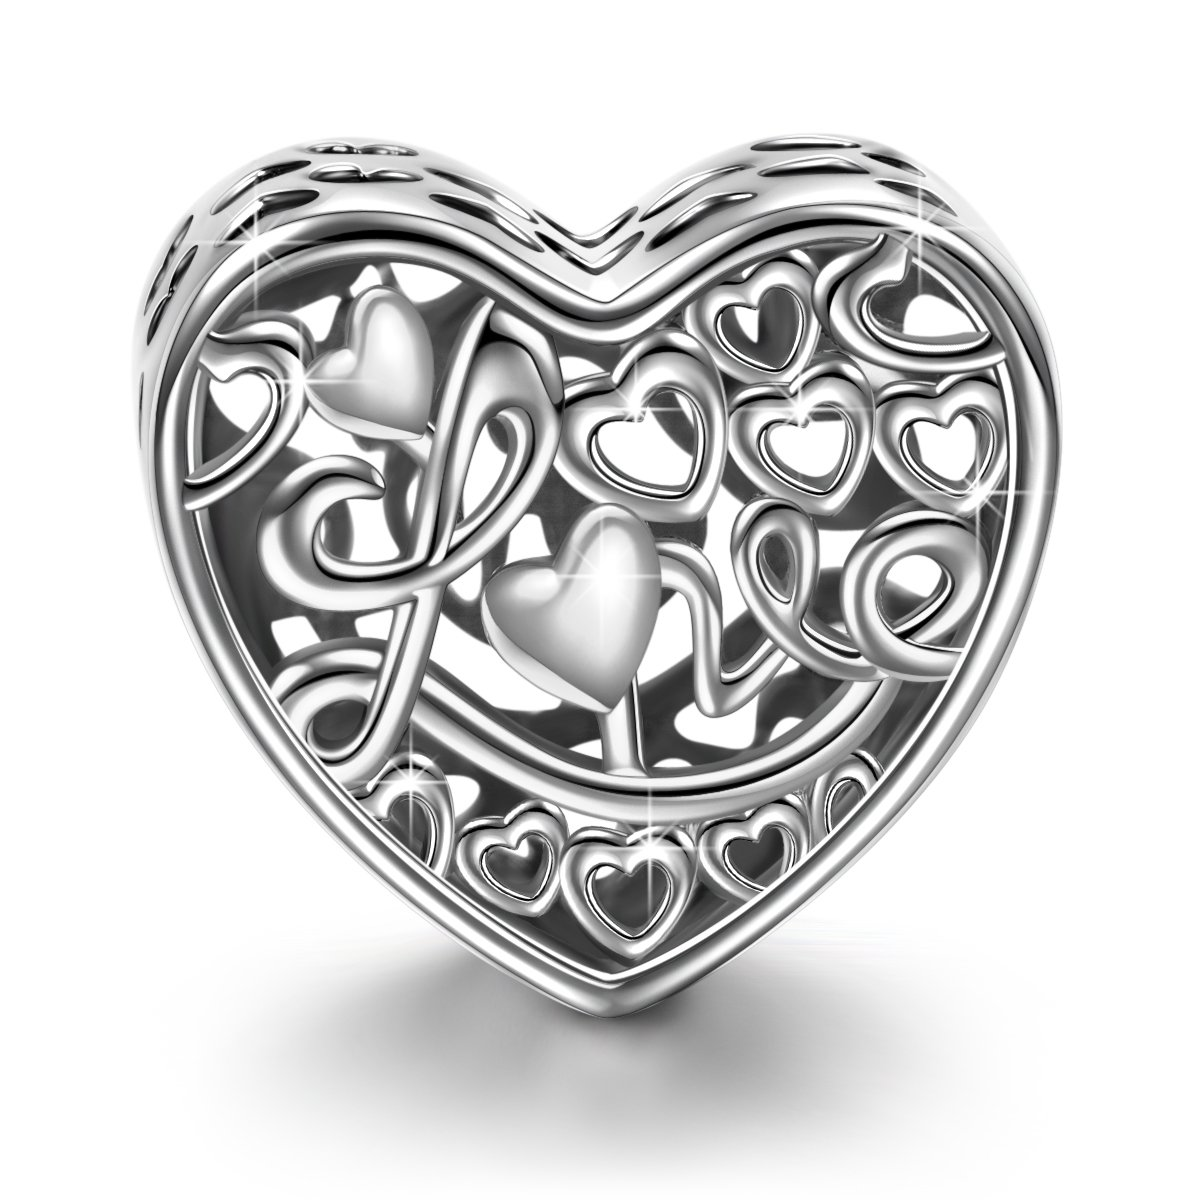 NINAQUEEN Love Icing Heart Shape Charms 925 Sterling Silver Hollow Bead Charms Fit for Bracelet Jewelry Gifts For Mom Birthday Anniversary Gifts For Her Wife Lover